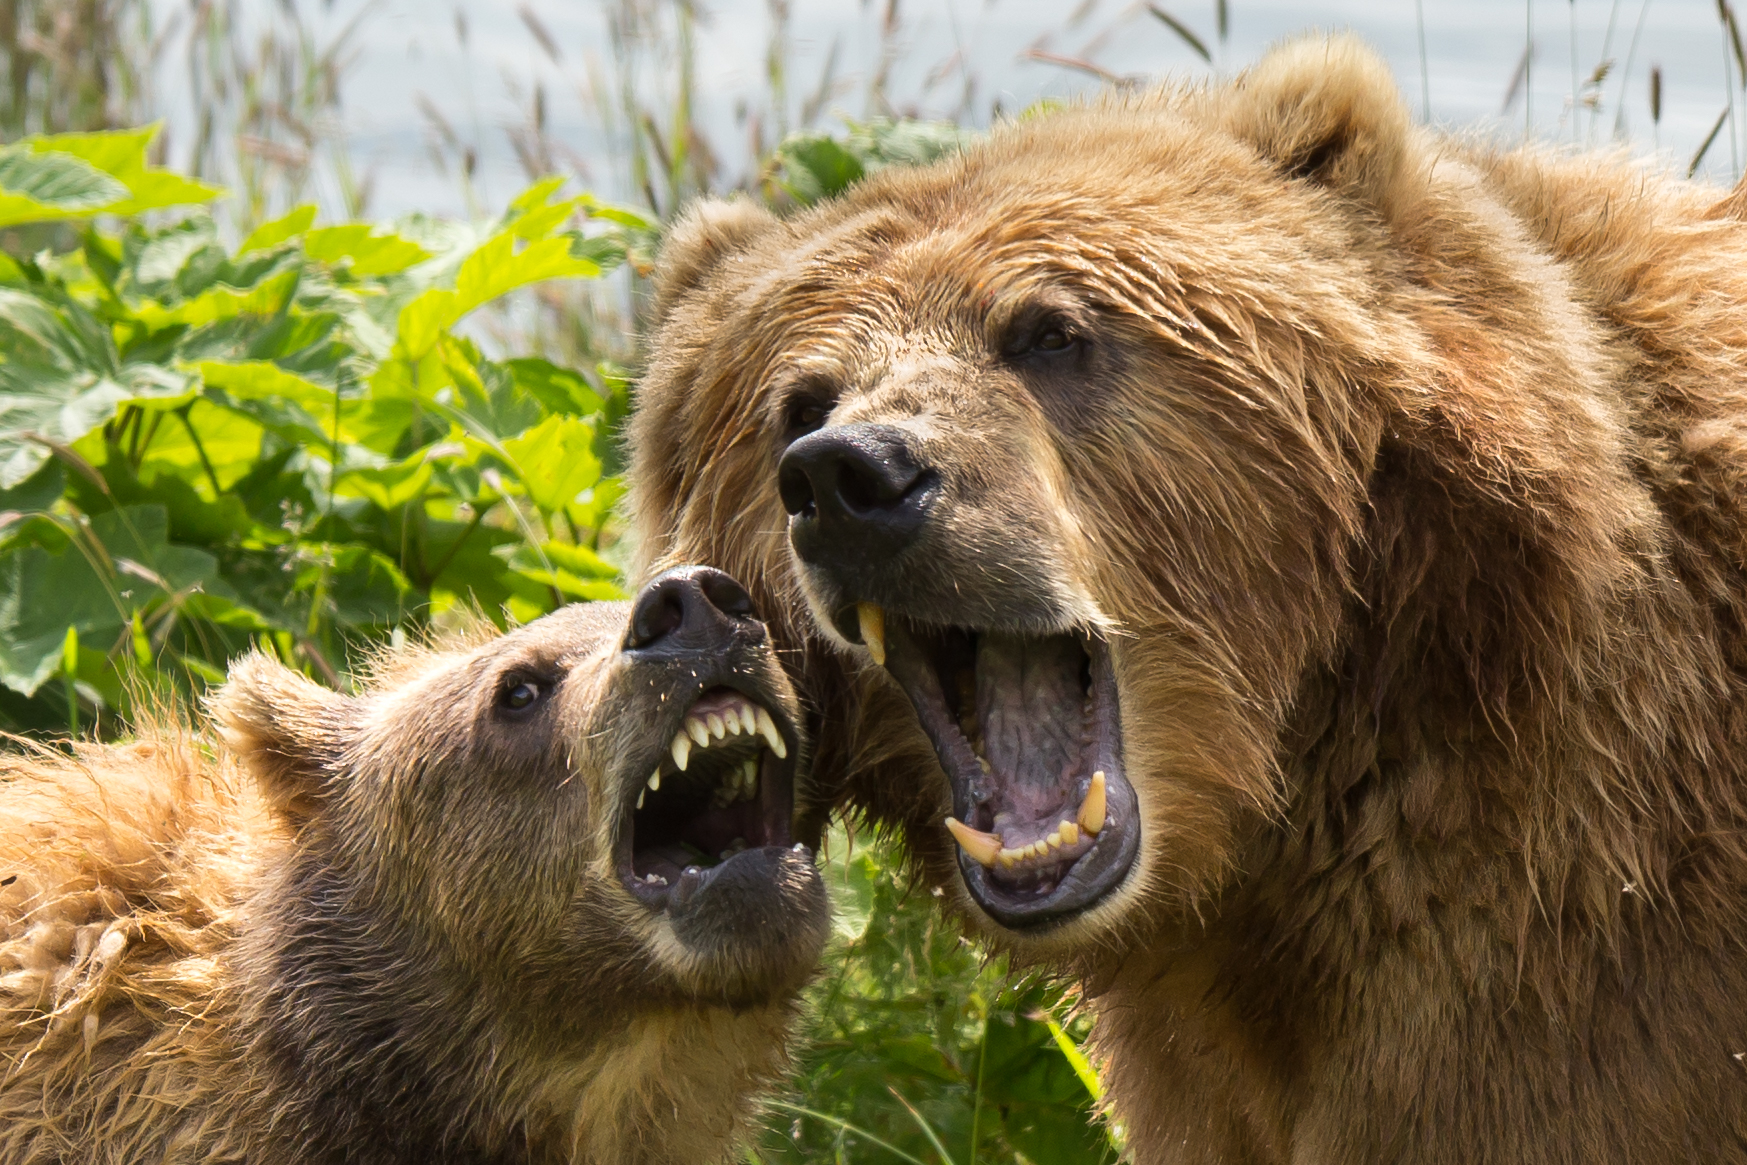 File:Kodiak brown bears FWS 18395.jpg - Wikimedia Commons